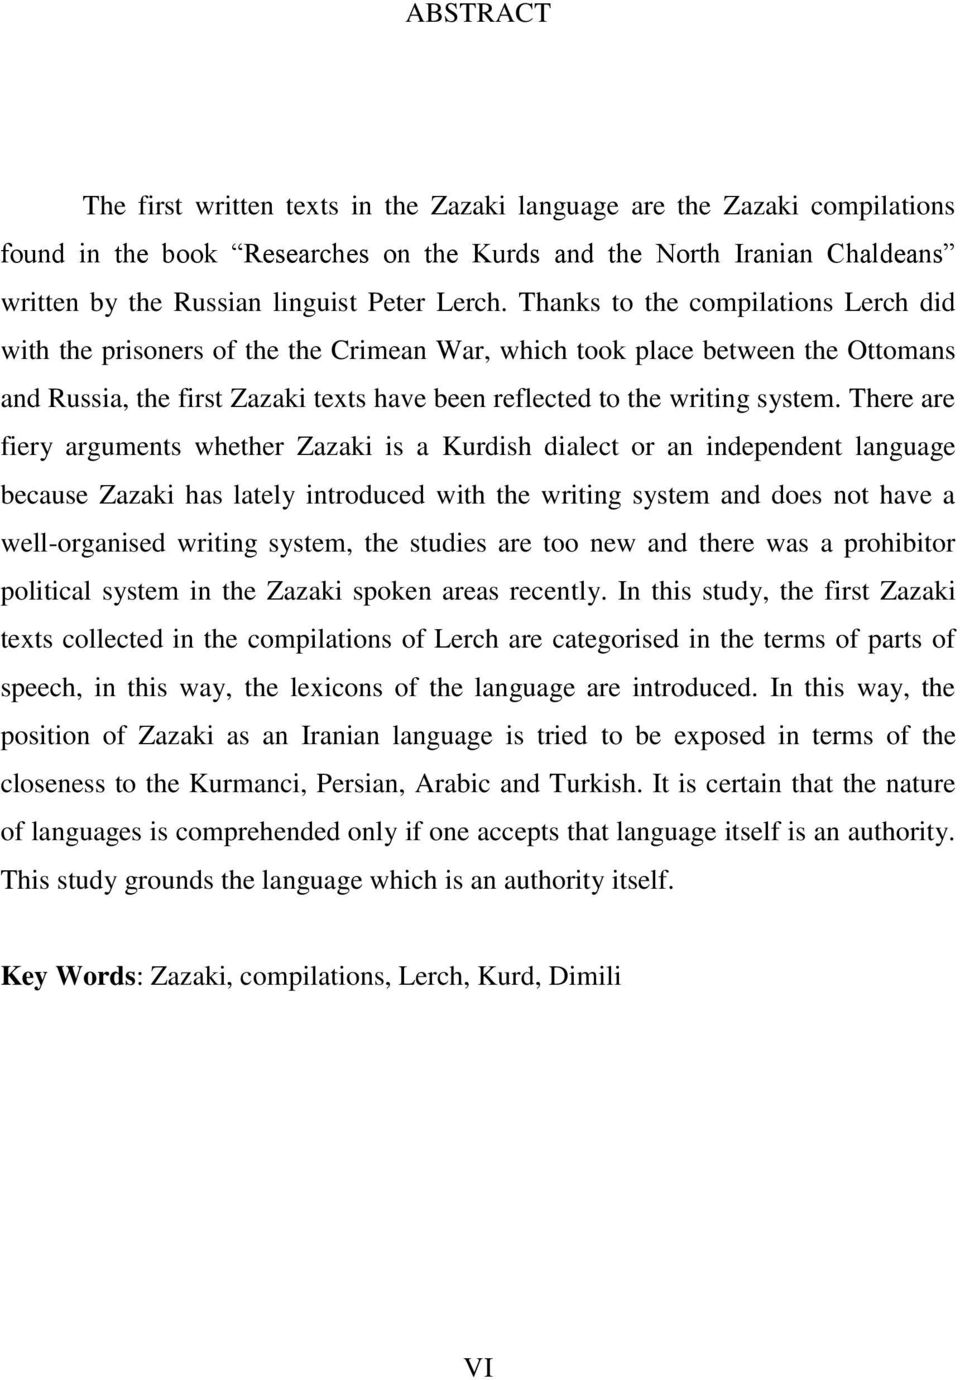 Thanks to the compilations Lerch did with the prisoners of the the Crimean War, which took place between the Ottomans and Russia, the first Zazaki texts have been reflected to the writing system.